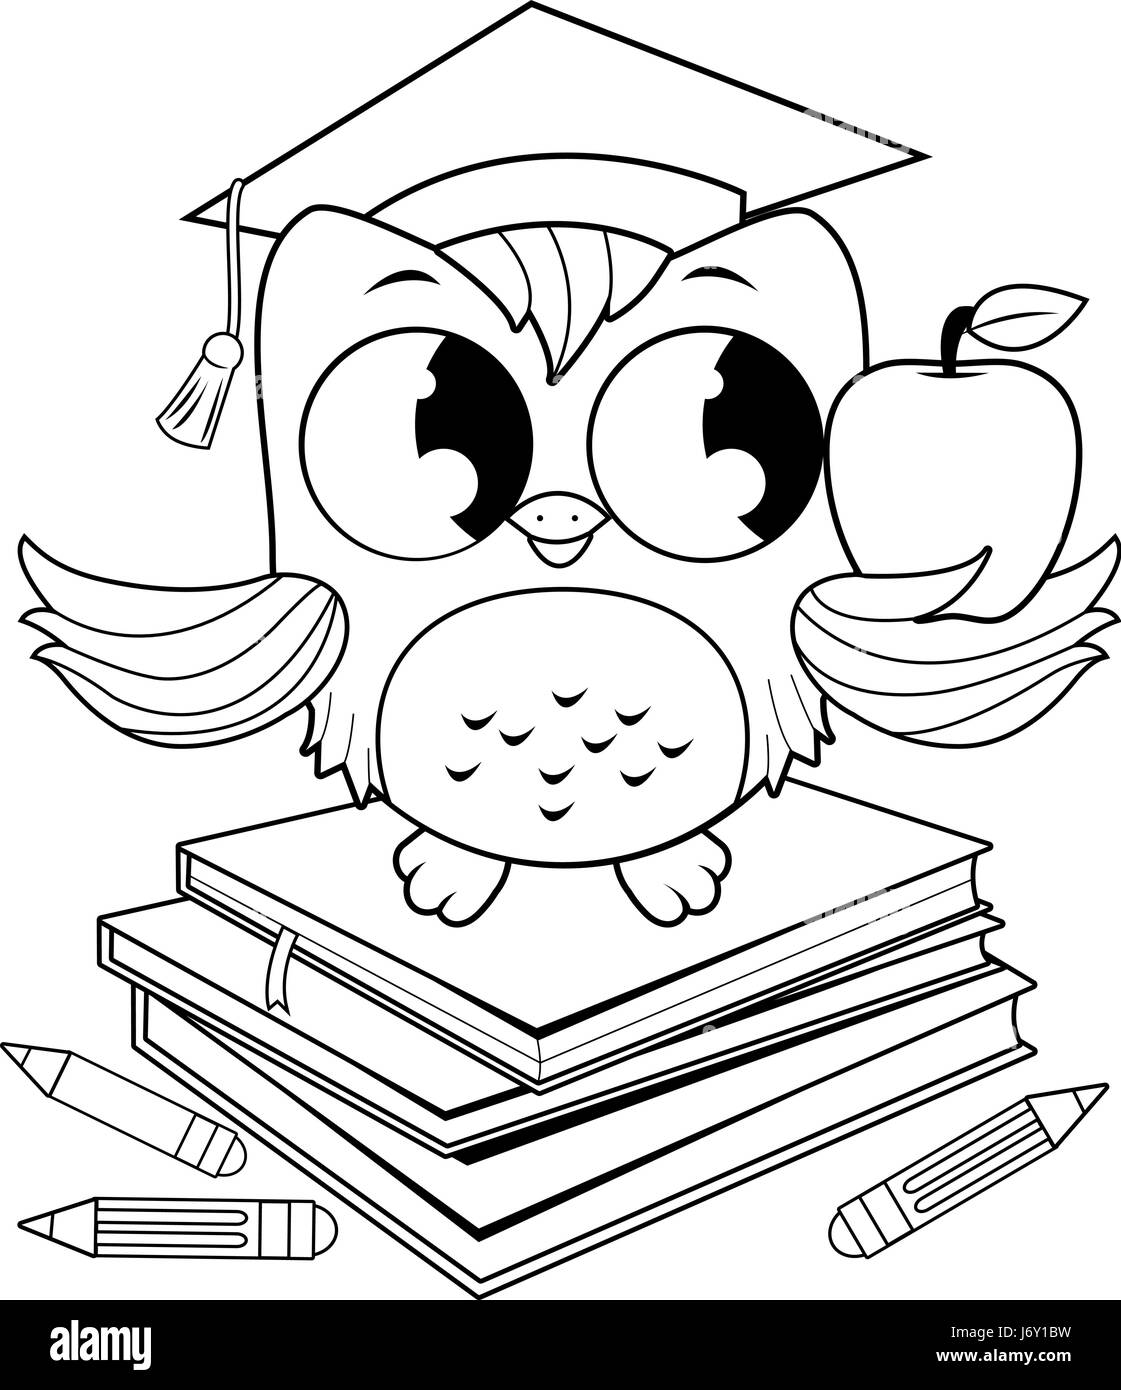 graduation hat coloring page free coloring pages download xsibe